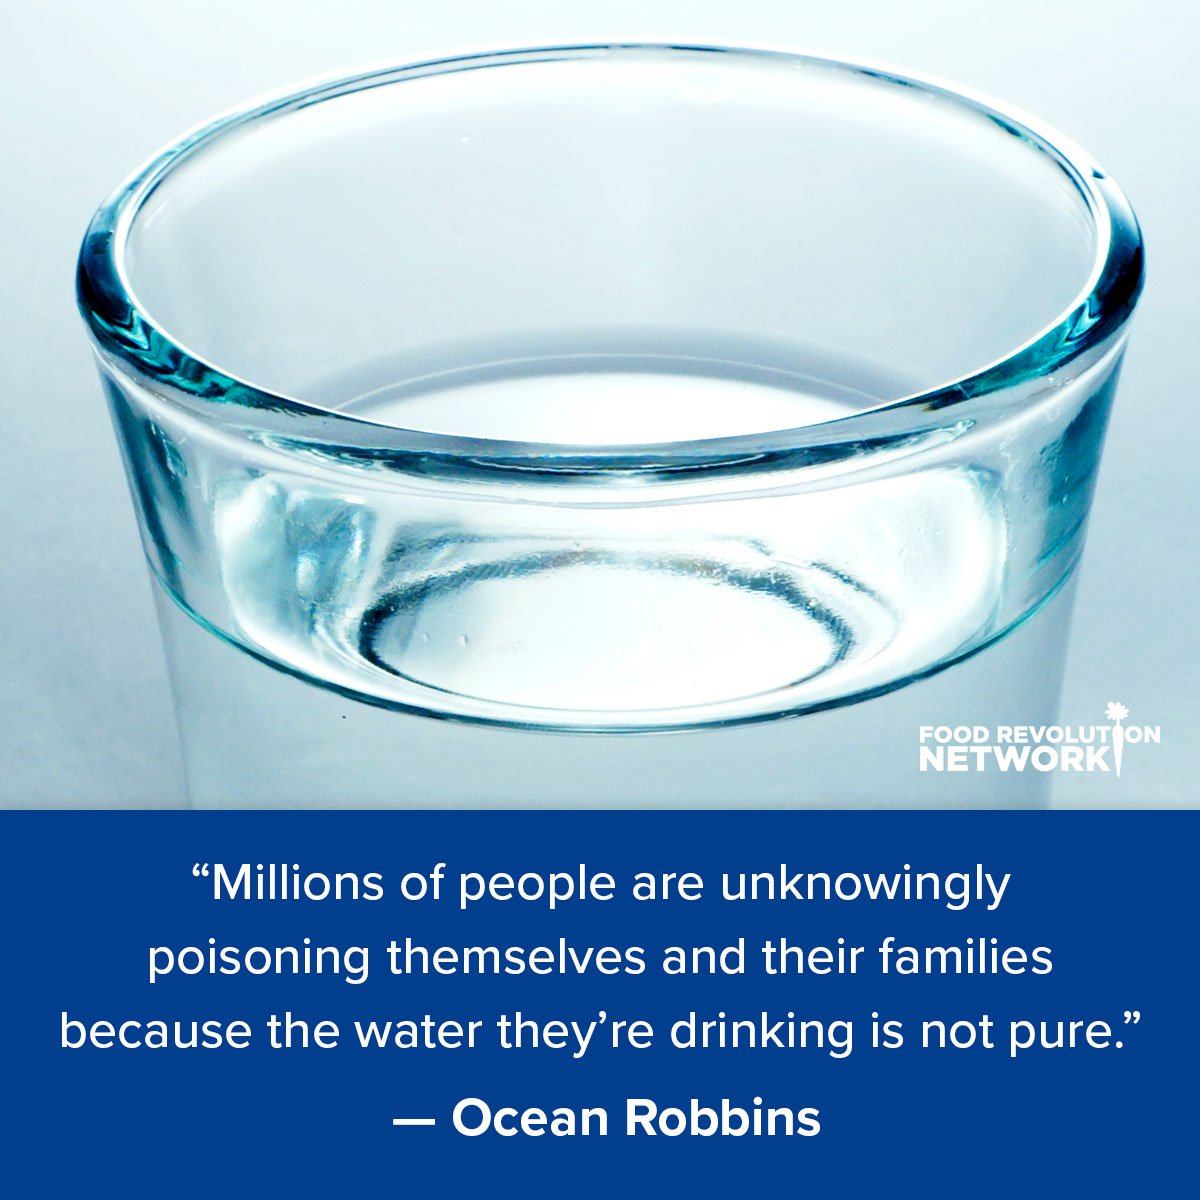 """Millions of people are unknowingly poisoning themselves and their families because the water they're drinking is not pure."" — Ocean Robbins"